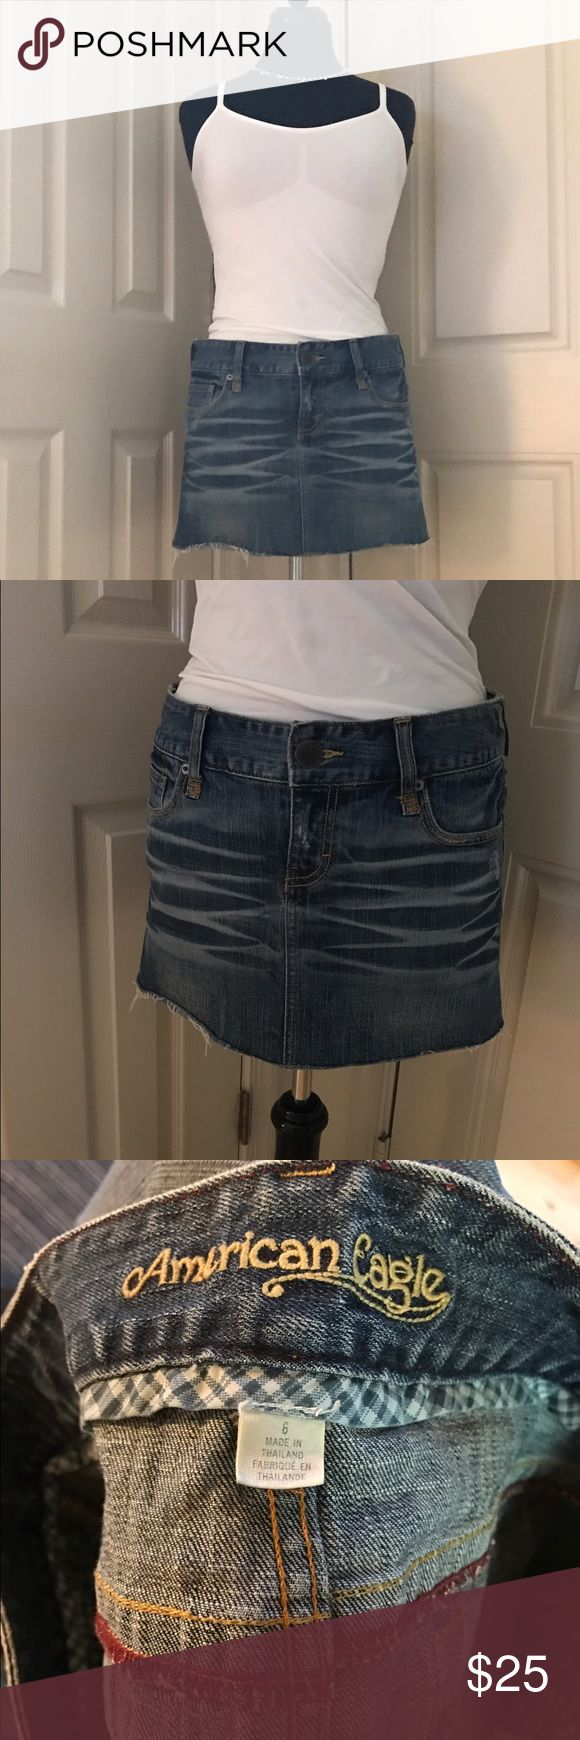 2 for 20 Distressed jean skirt American eagle size 6 distressed jean skirt. In excellent condition 🤗Buy 2 skirts for $20💥💥price is firm unless bundled. To get the 2 for $20 deal bundle the 2 items you want and submit a bundle offer. Please ask if you have questions American Eagle Outfitters Skirts Mini